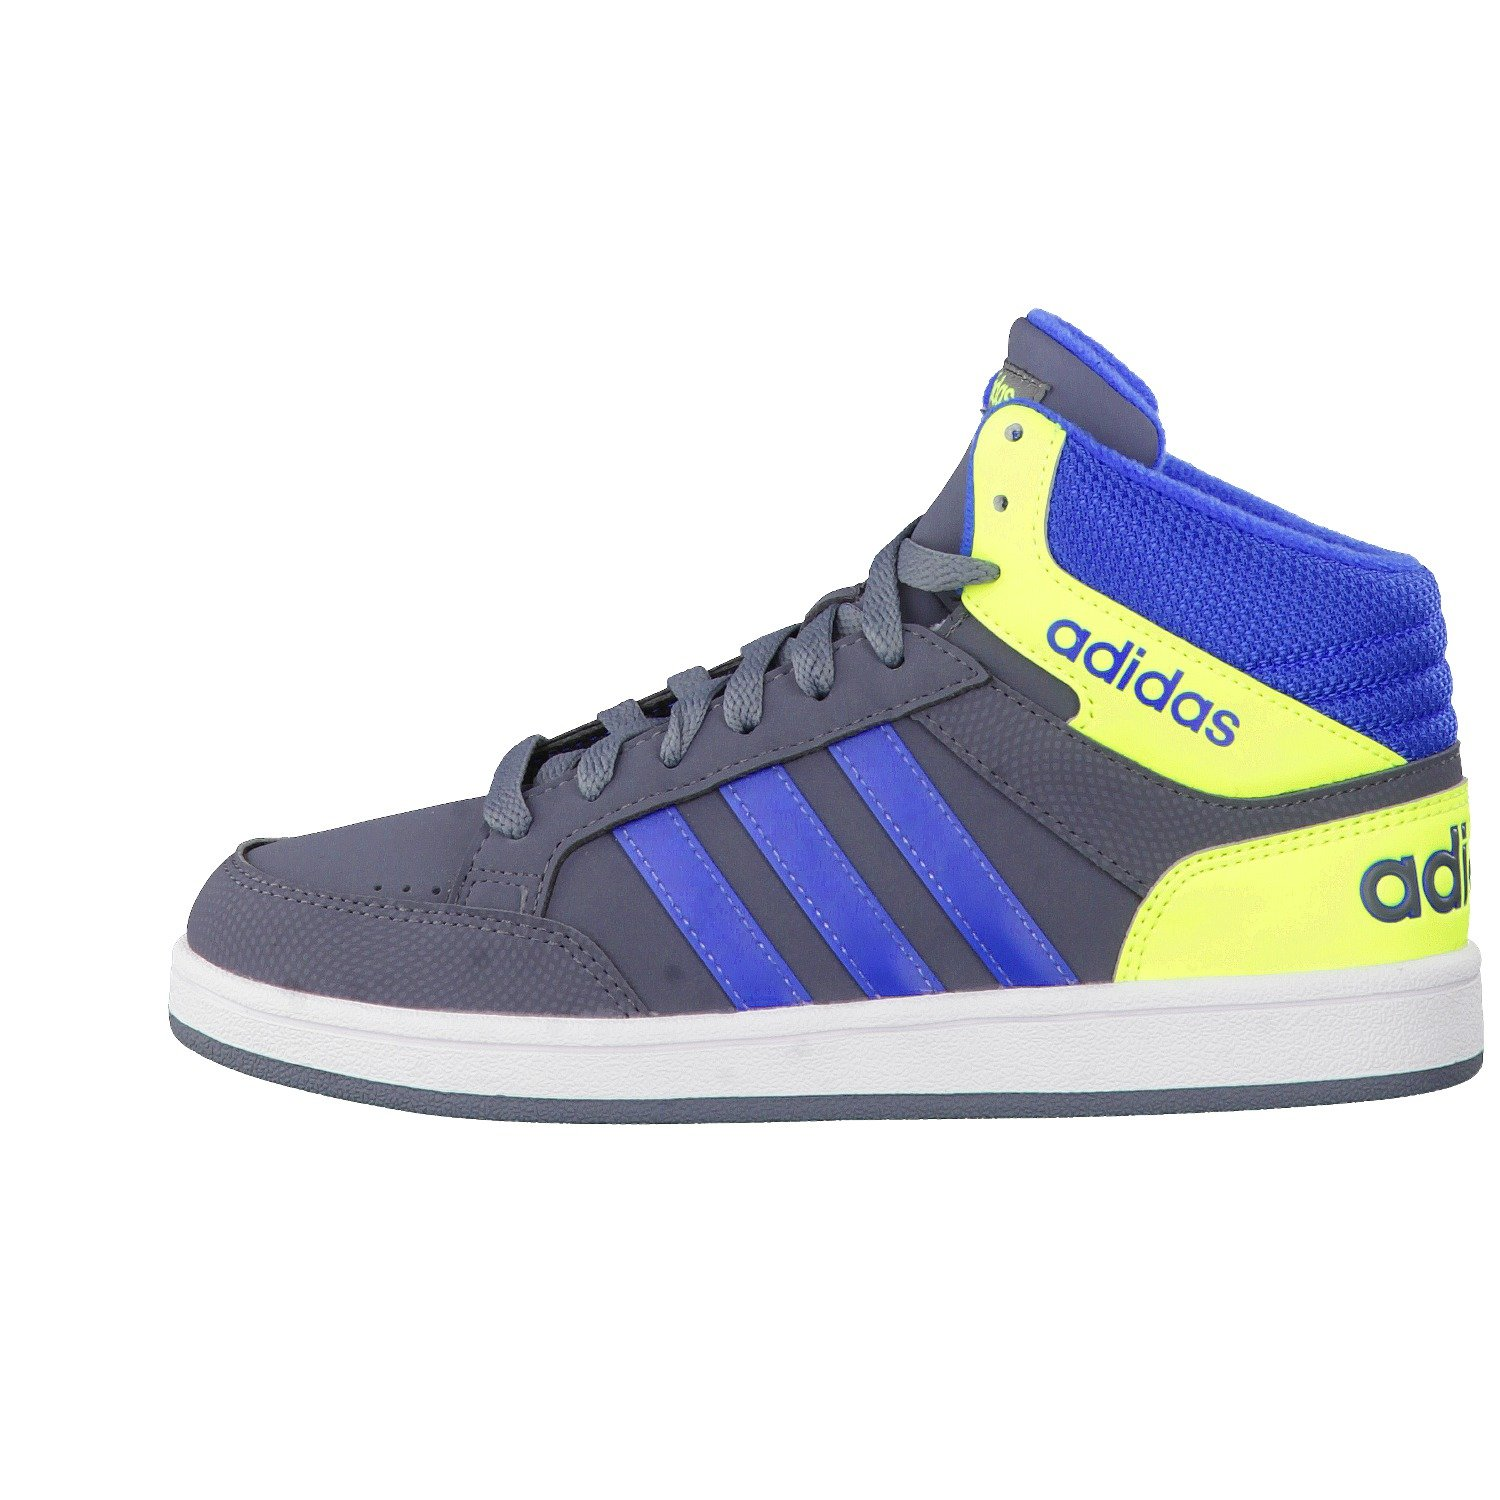 official photos 152bb 2ebd3 ... hot adidas kinder high top sneaker freizeitschuhe schuhe hoops light mid  k grau blau amazon.